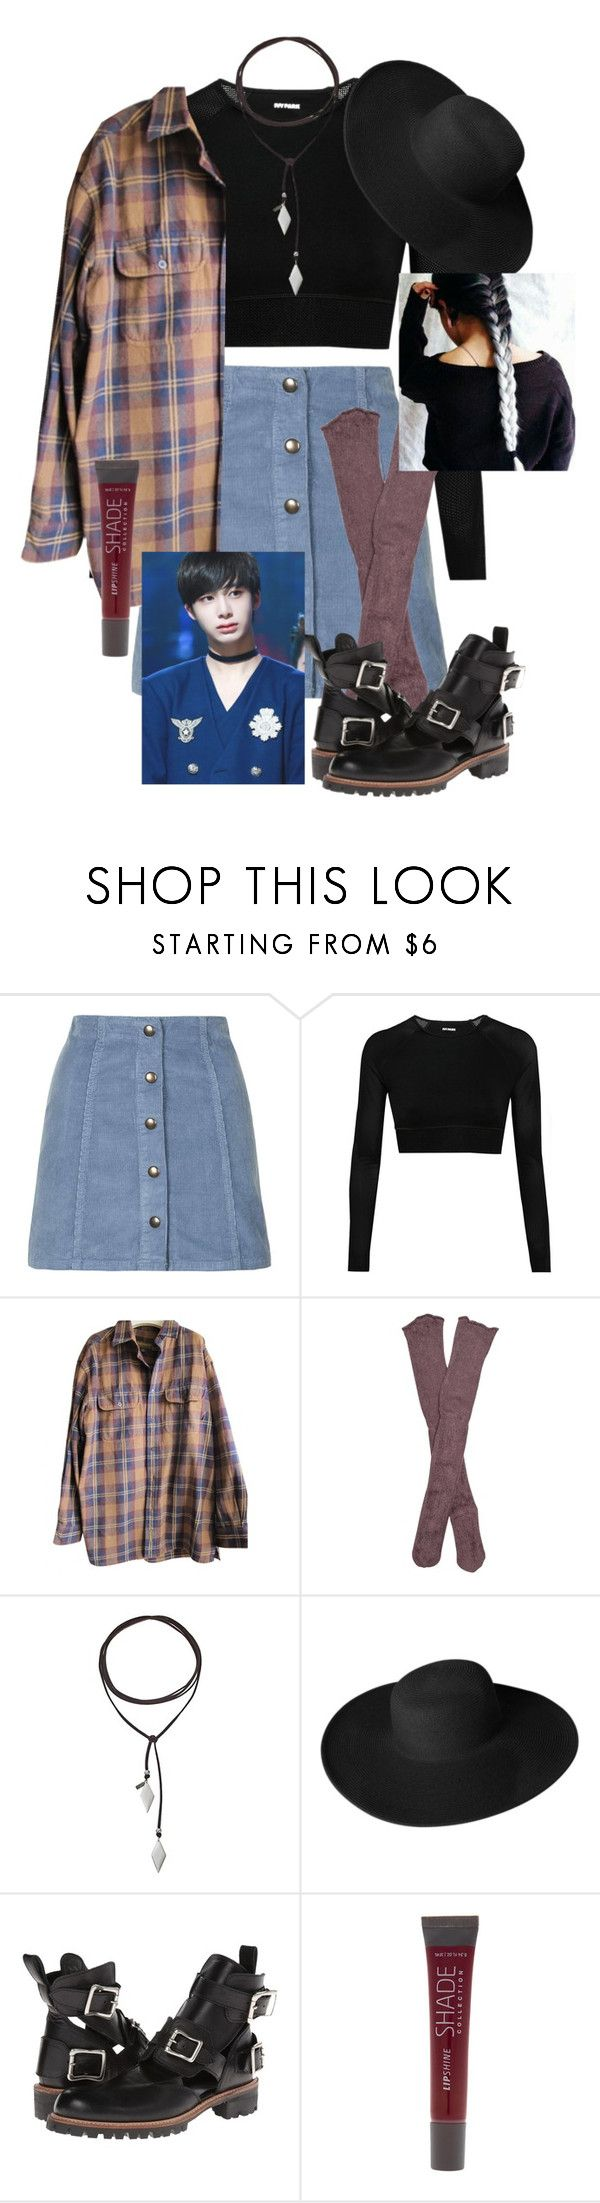 """""""Hyungwon!"""" by pieeella ❤ liked on Polyvore featuring Topshop, Ivy Park, Timberland, Free People, Vanessa Mooney, Dorfman Pacific, Yohji Yamamoto and SHADE Collection"""